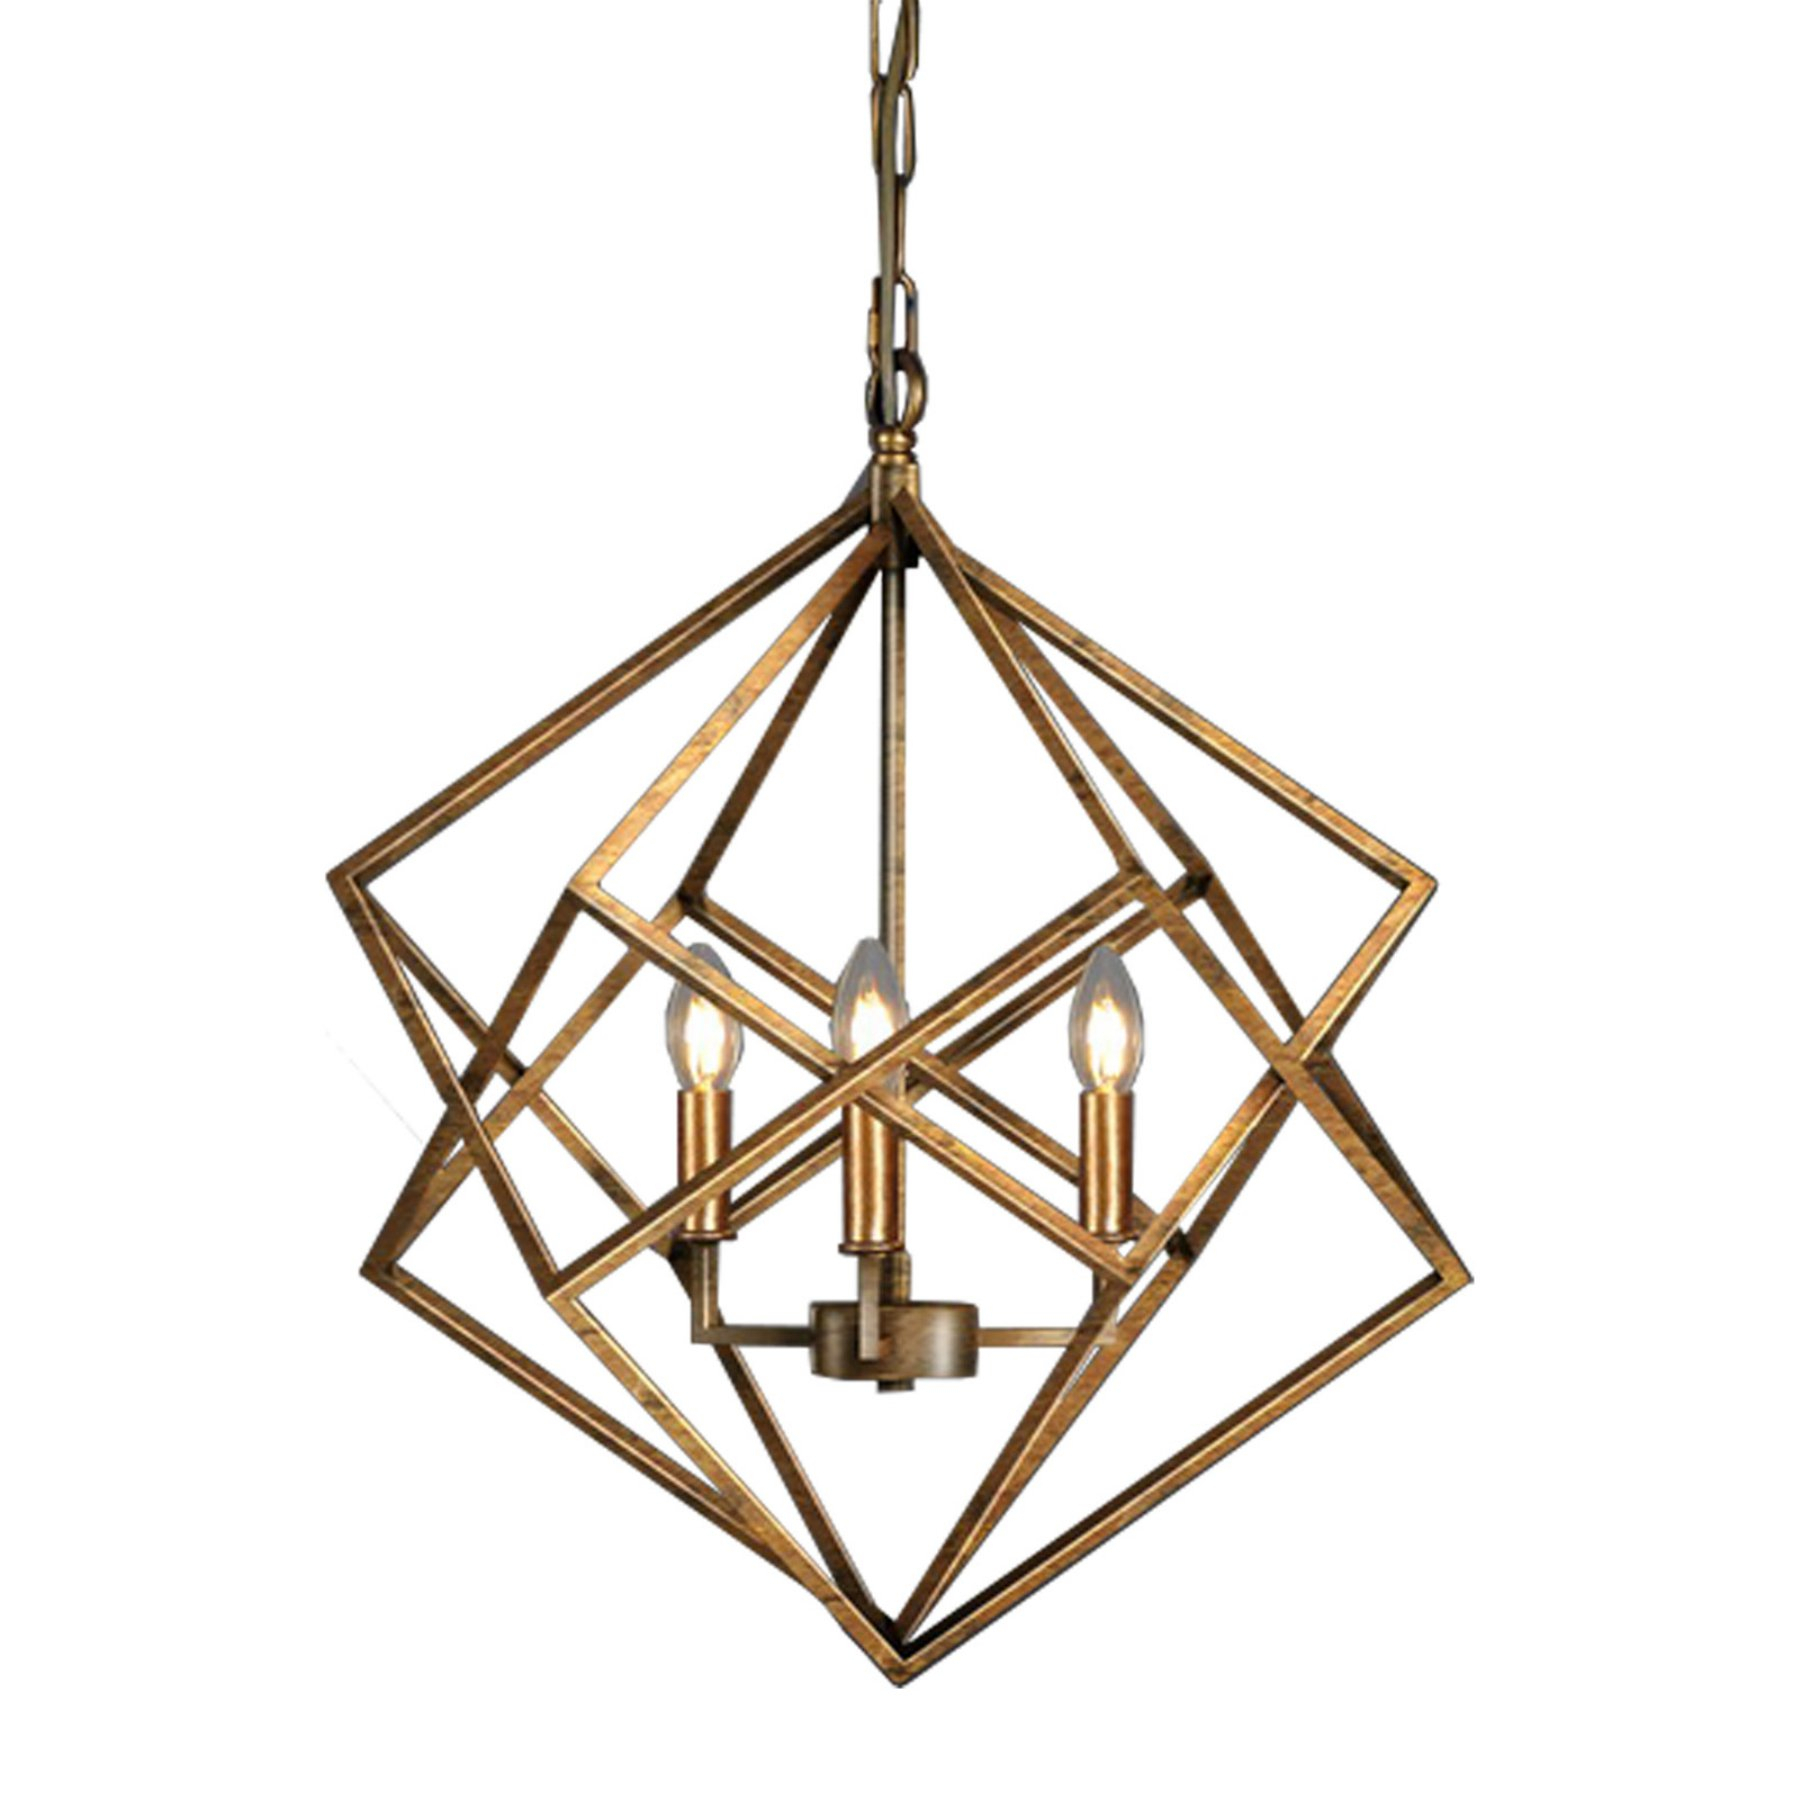 Russ160 Vista Geometric Chandelier – Bilt005Ag | Products In With Regard To Cavanagh 4 Light Geometric Chandeliers (Gallery 14 of 30)